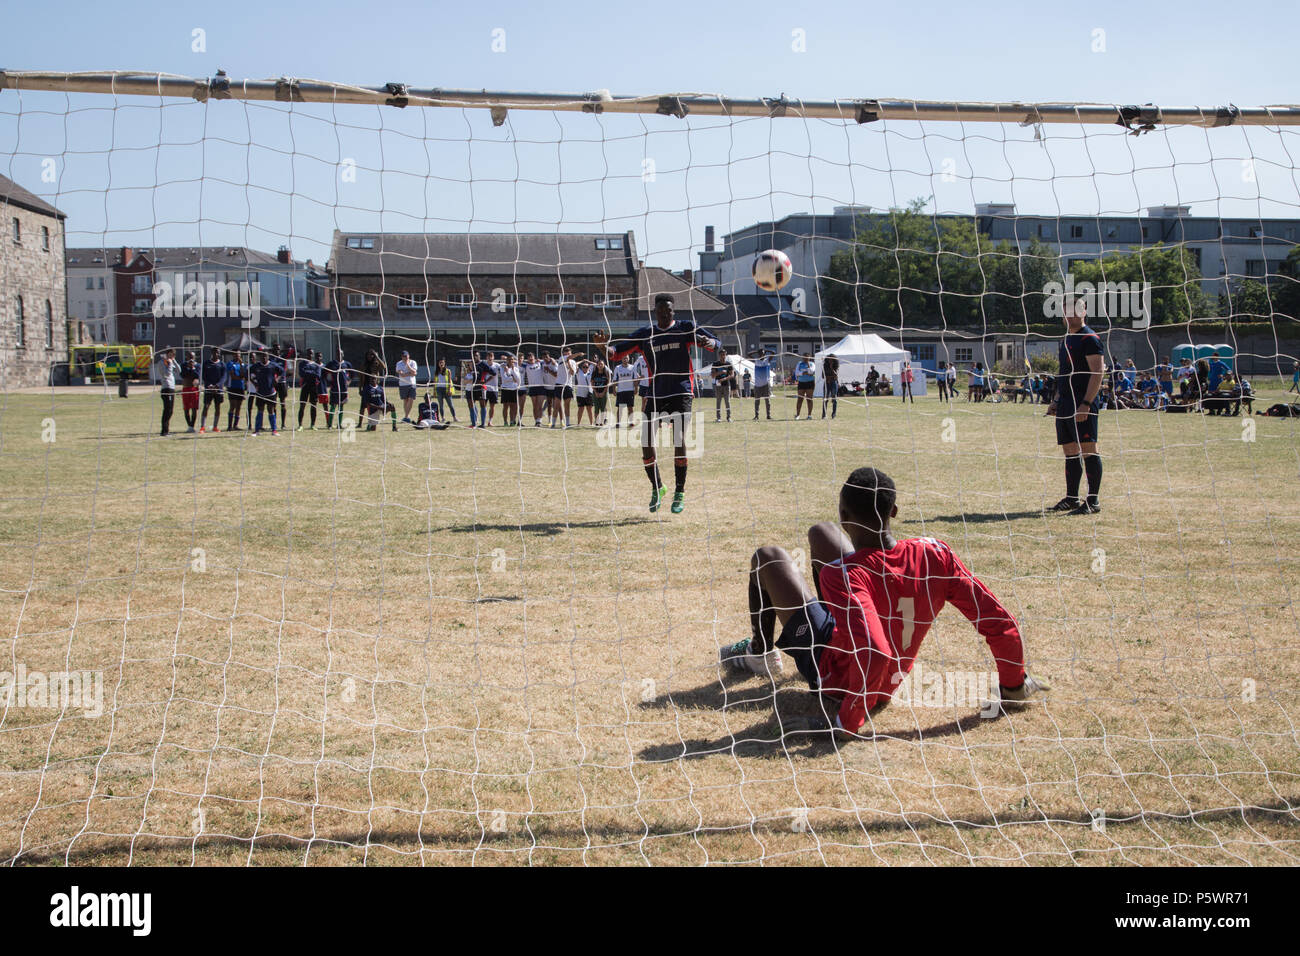 Goalkeeper making a save in penalty shoot out. - Stock Image